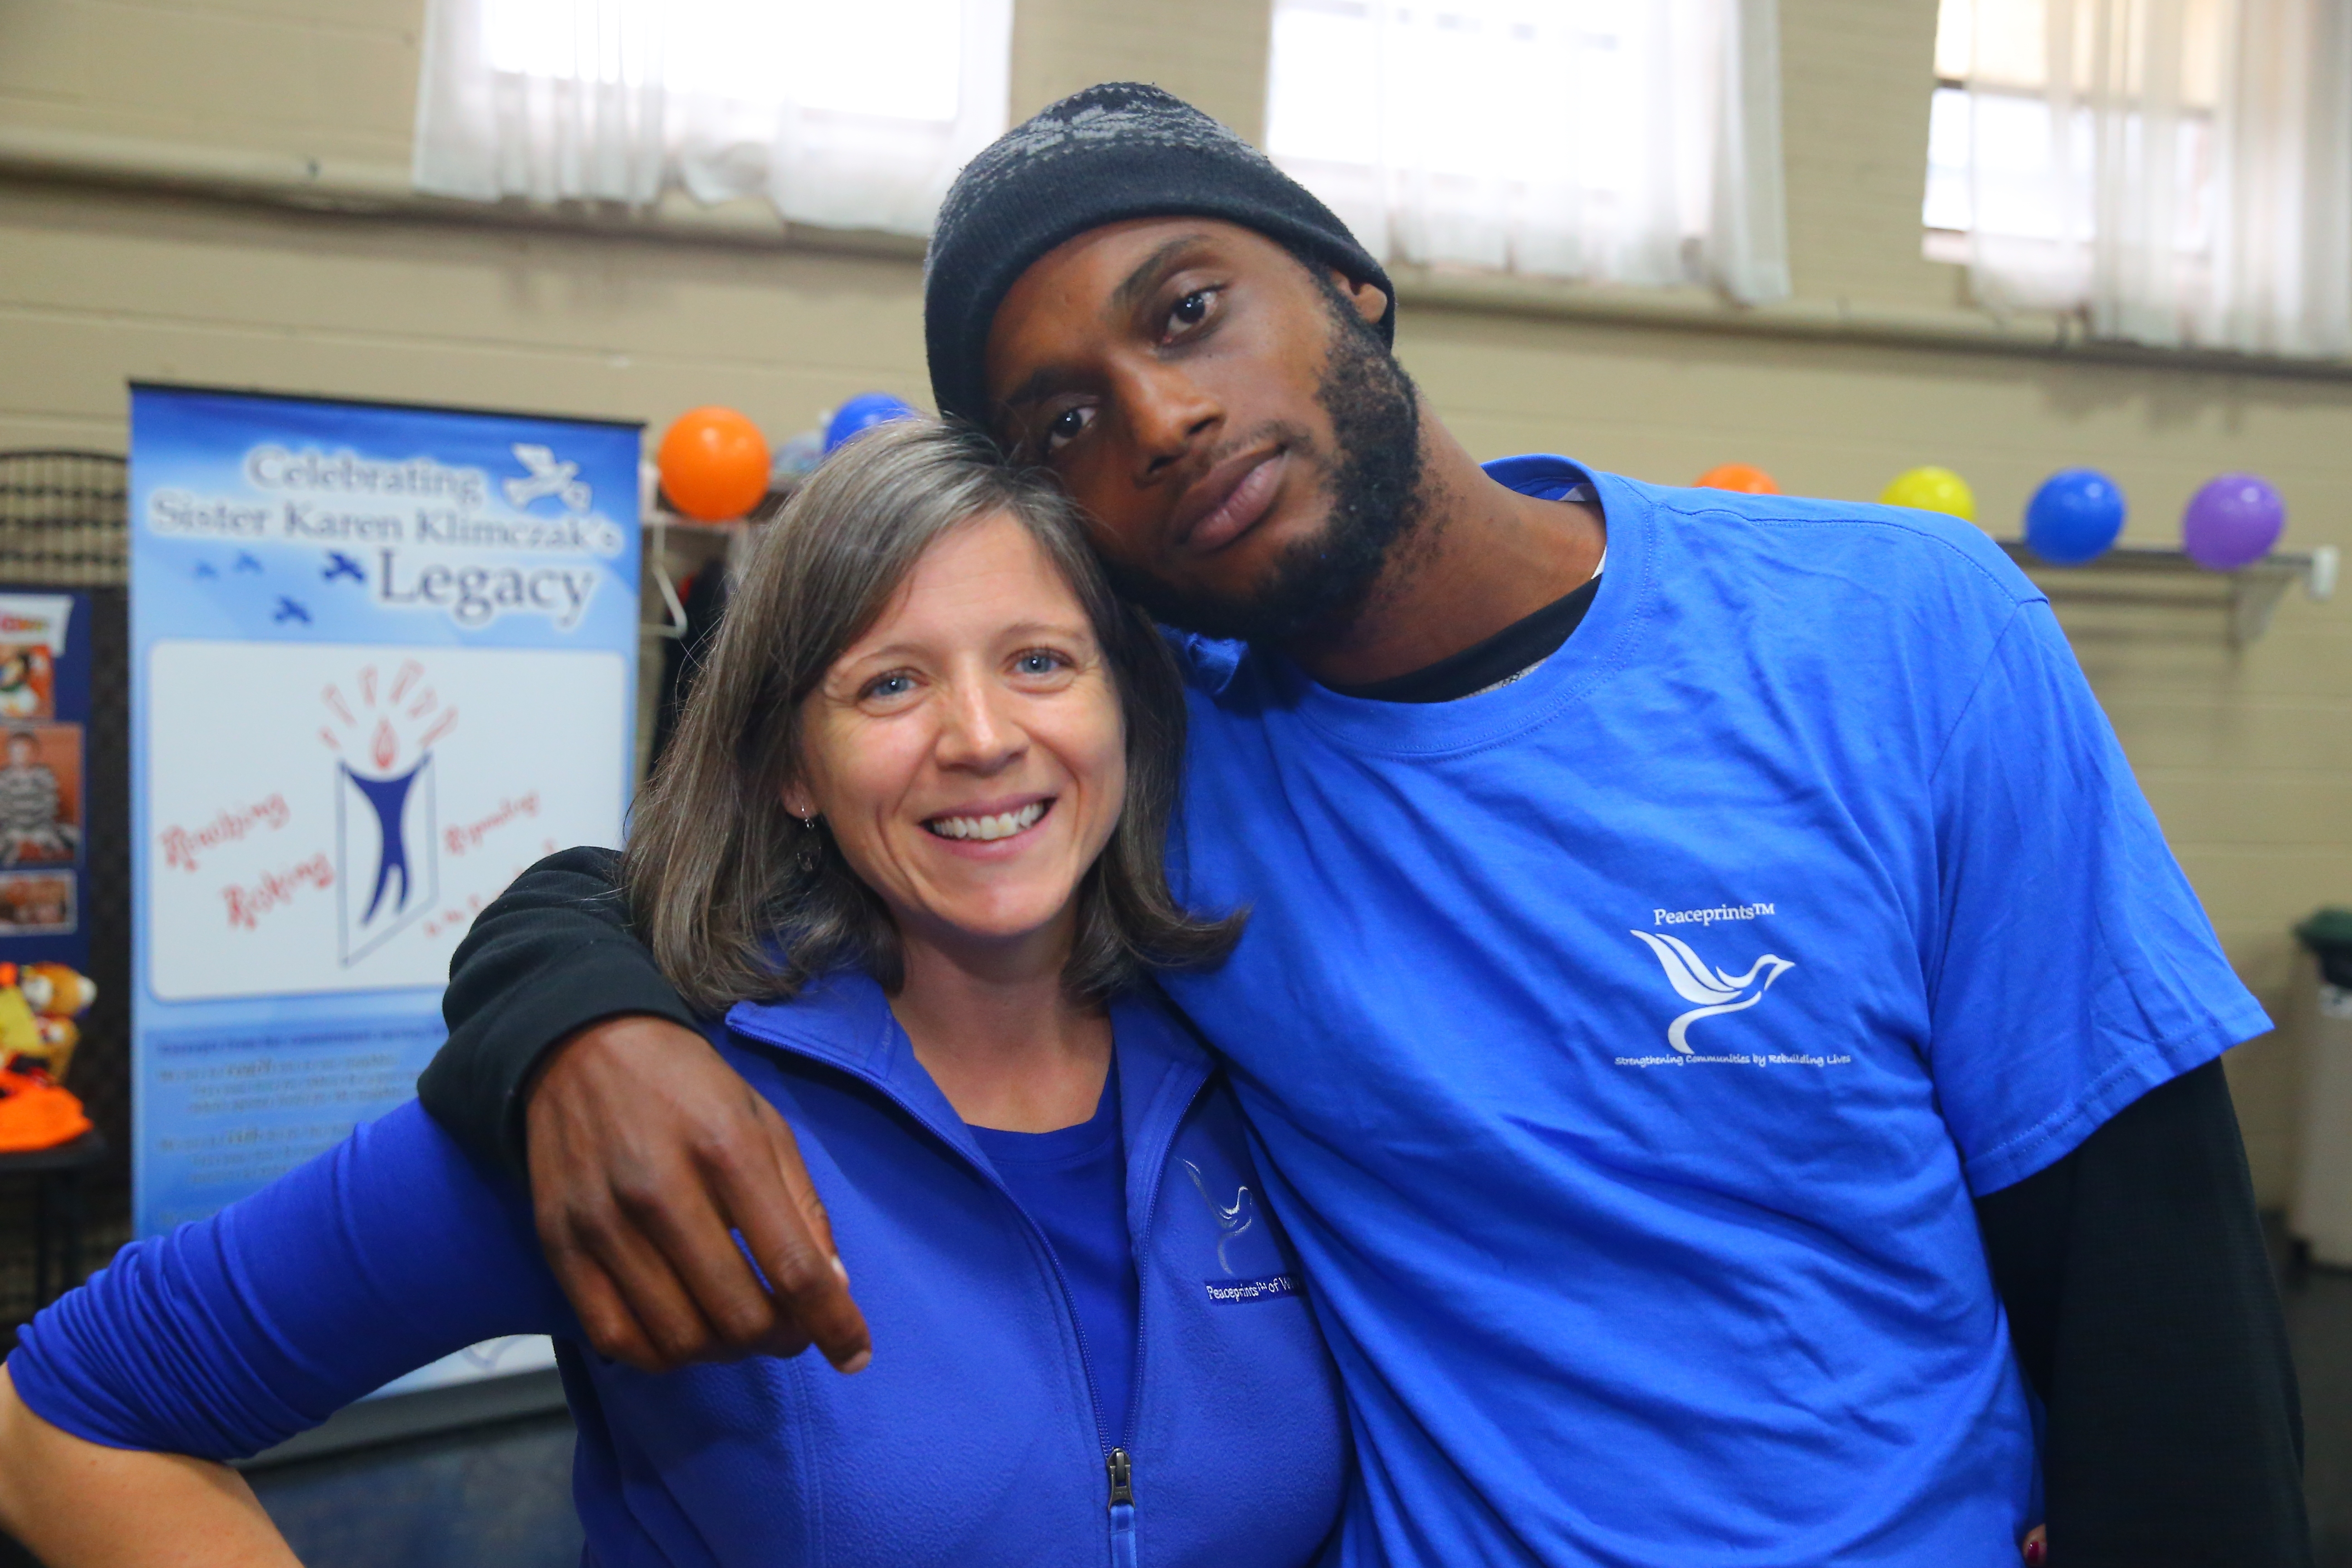 Cindy McEachon , executive director, left and Jamal Johnson at a free community party to commemorate the 10th anniversary of slaying of Sister Karen Klimczak at Ephesus Ministries Parish Hall in Buffalo on Sunday Oct. 30, 2016. (John Hickey/Buffalo News)